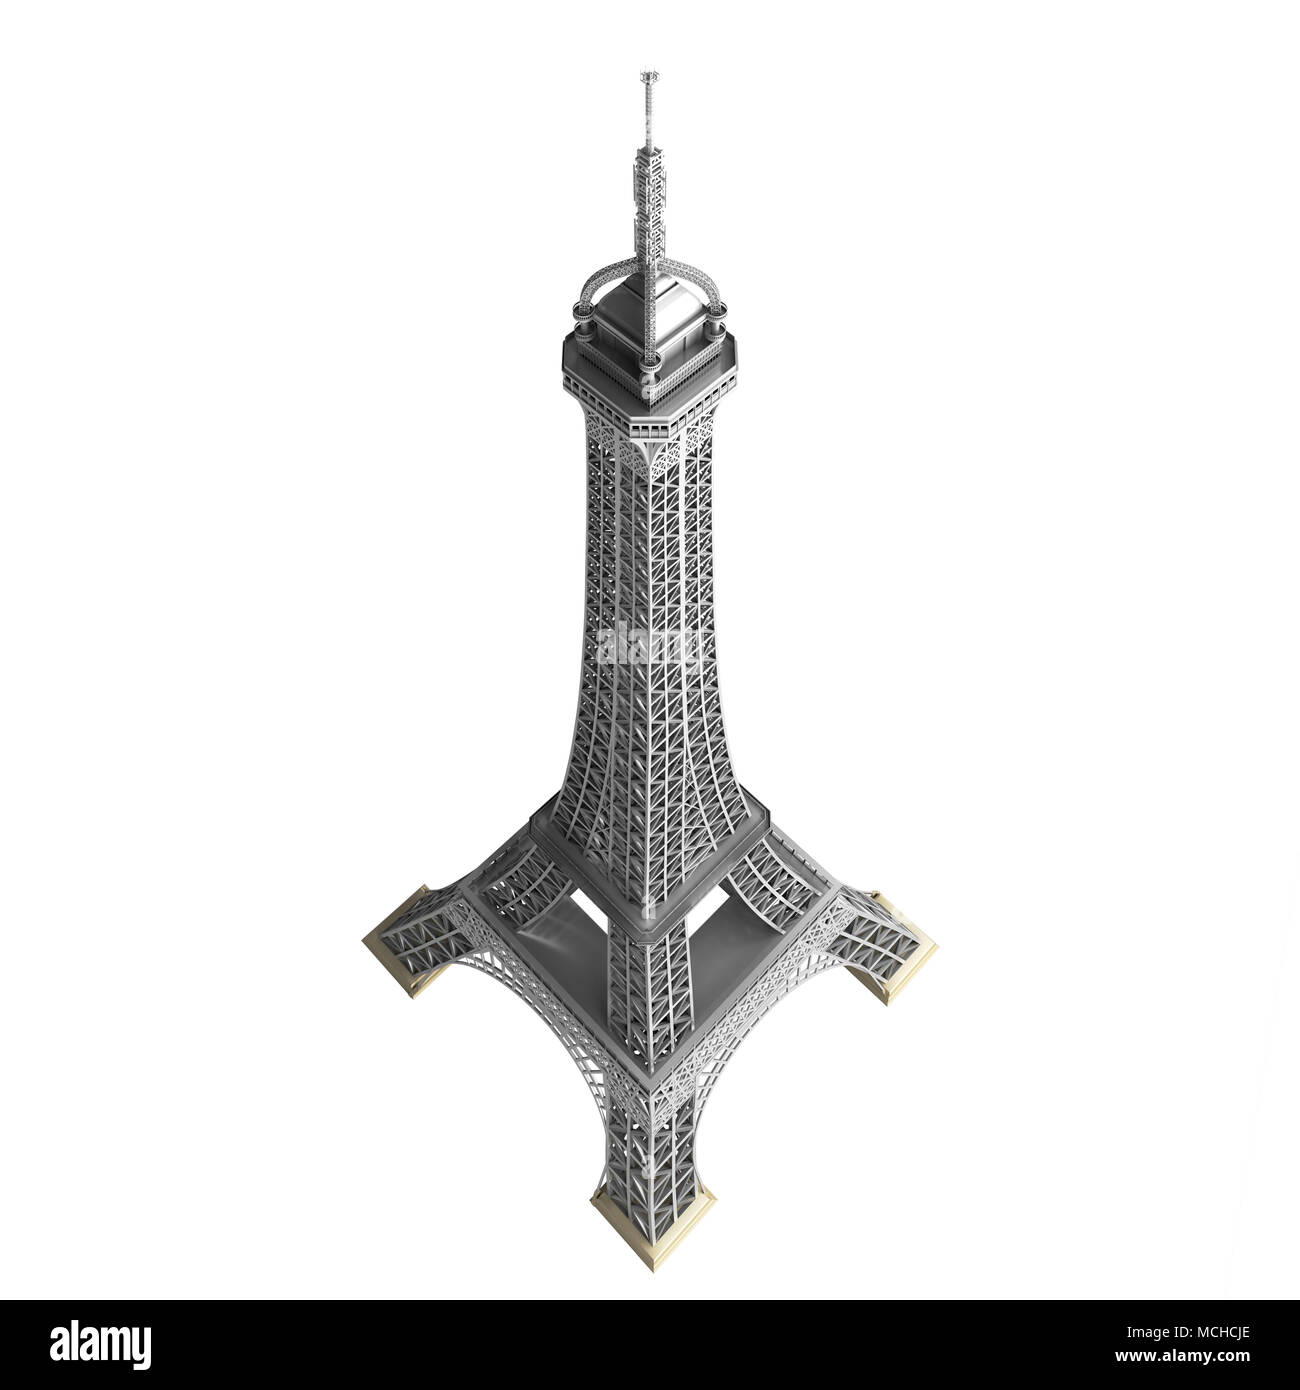 Eiffel tower in Paris isolated on the white backgroun, earial top view. - Stock Image